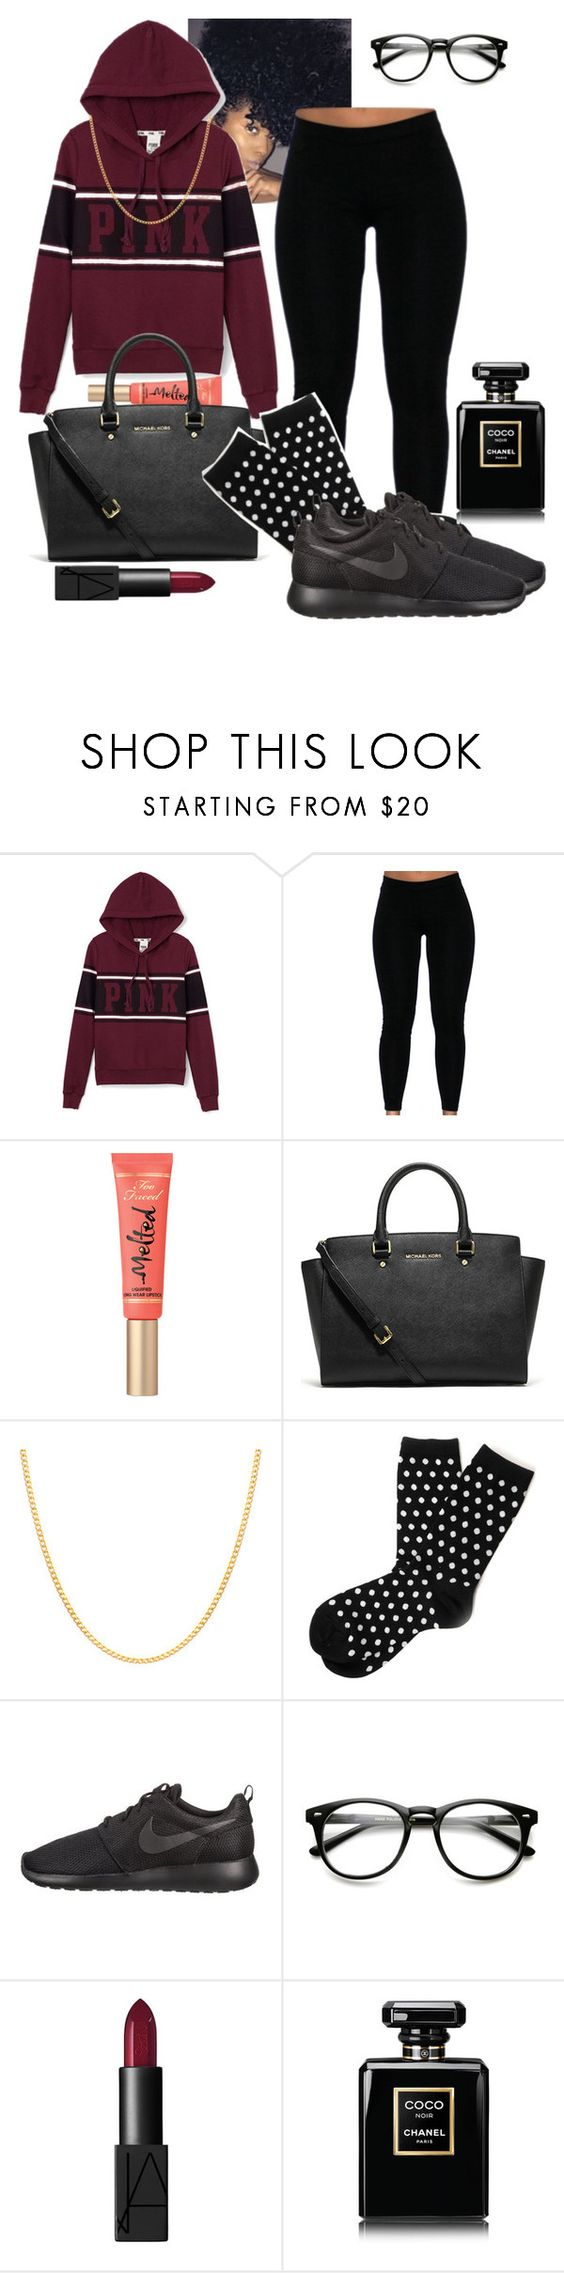 """Untitled #140"" by classycam ❤ liked on Polyvore featuring Victoria's Secret PINK, Too Faced Cosmetics, Michael Kors, Sterling Essentials, Hansel from Basel, NIKE, NARS Cosmetics and Chanel"